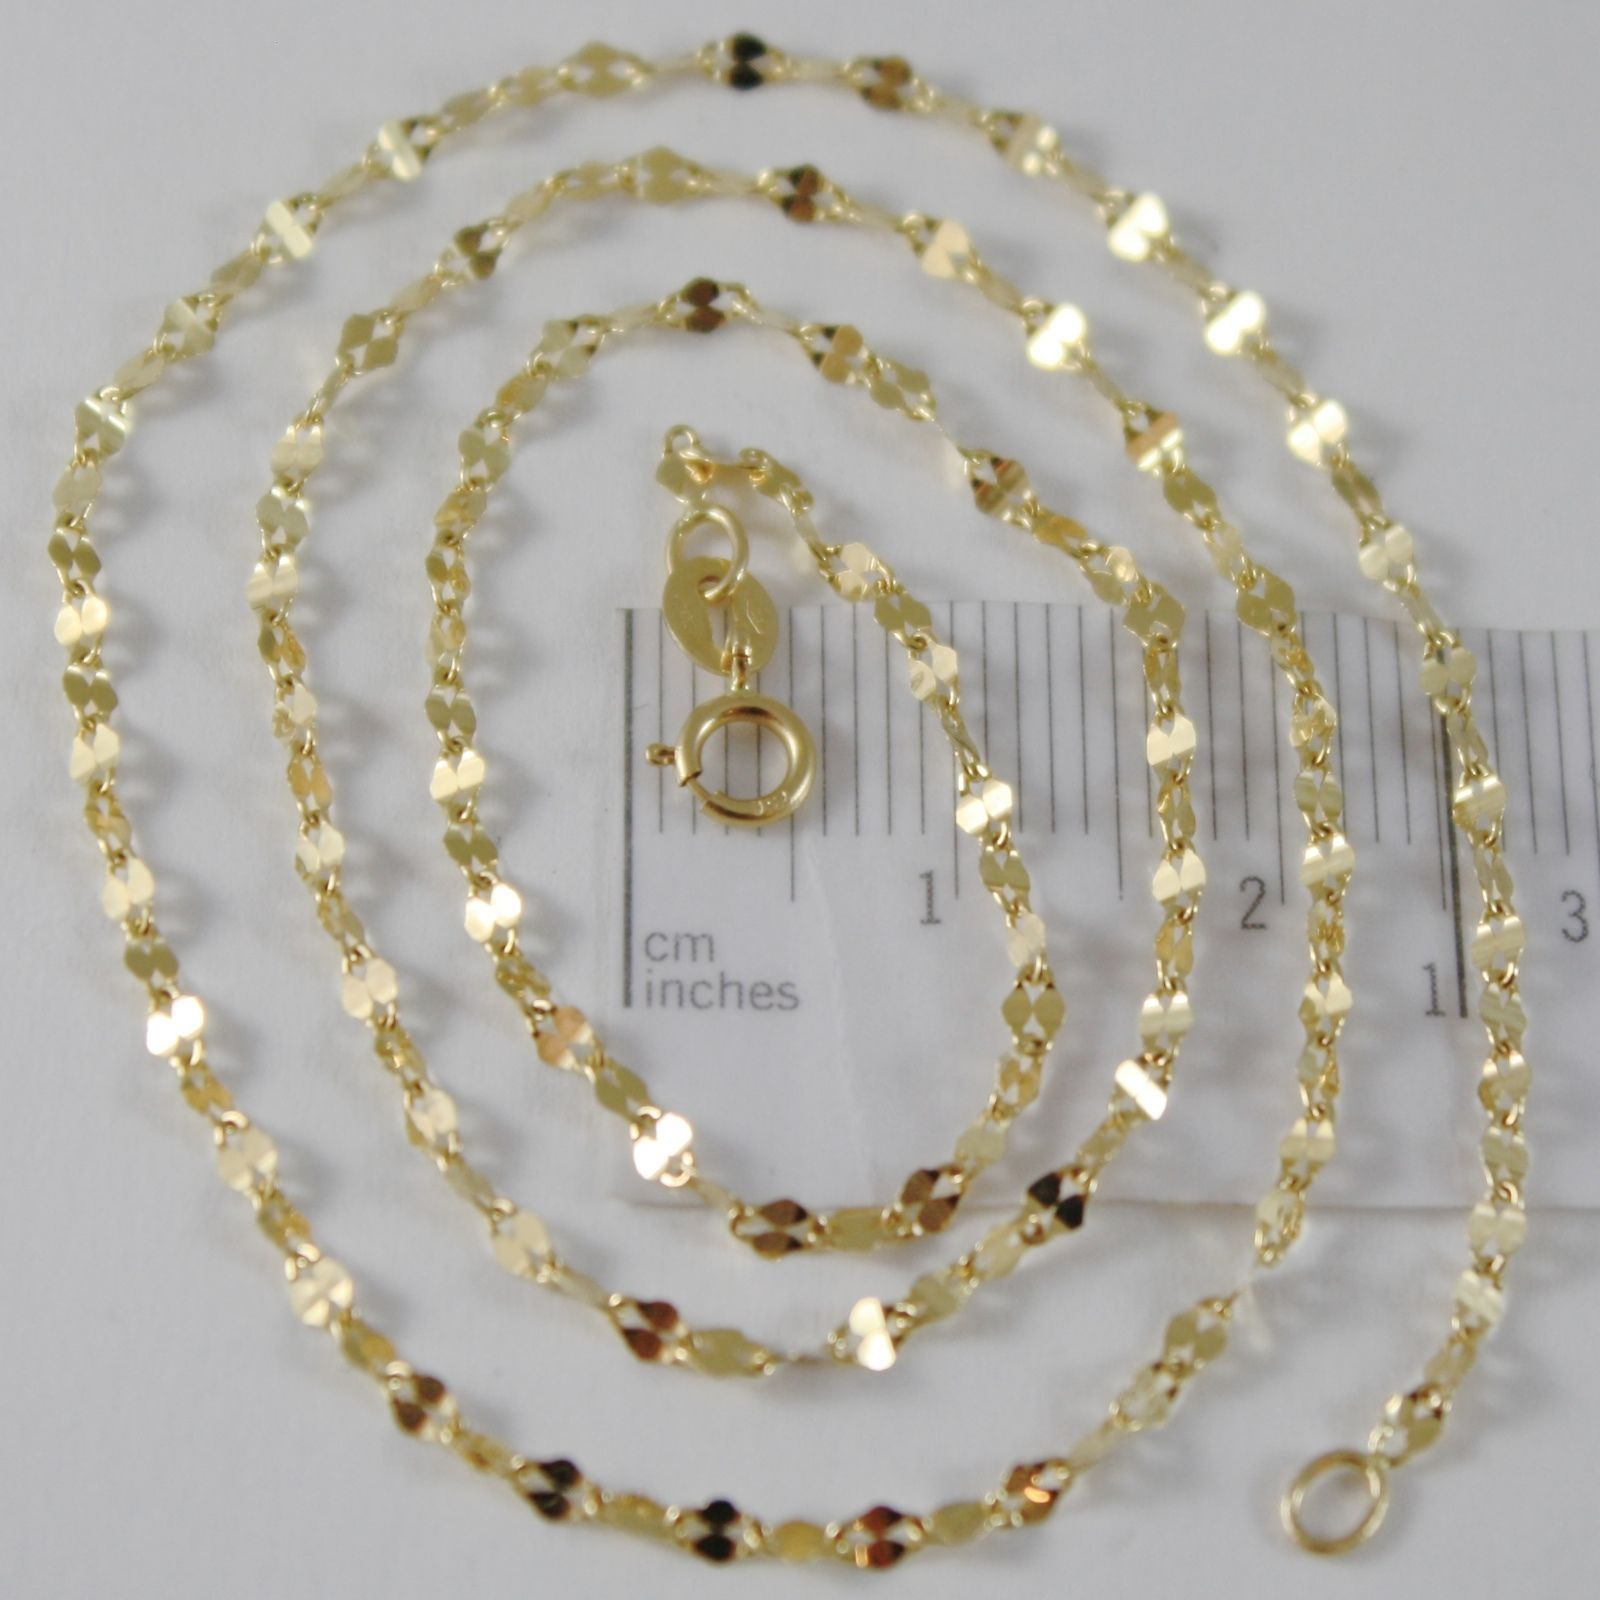 SOLID 18K YELLOW GOLD FLAT BRIGHT KITE CHAIN 16 INCHES, 2.2 MM MADE IN ITALY